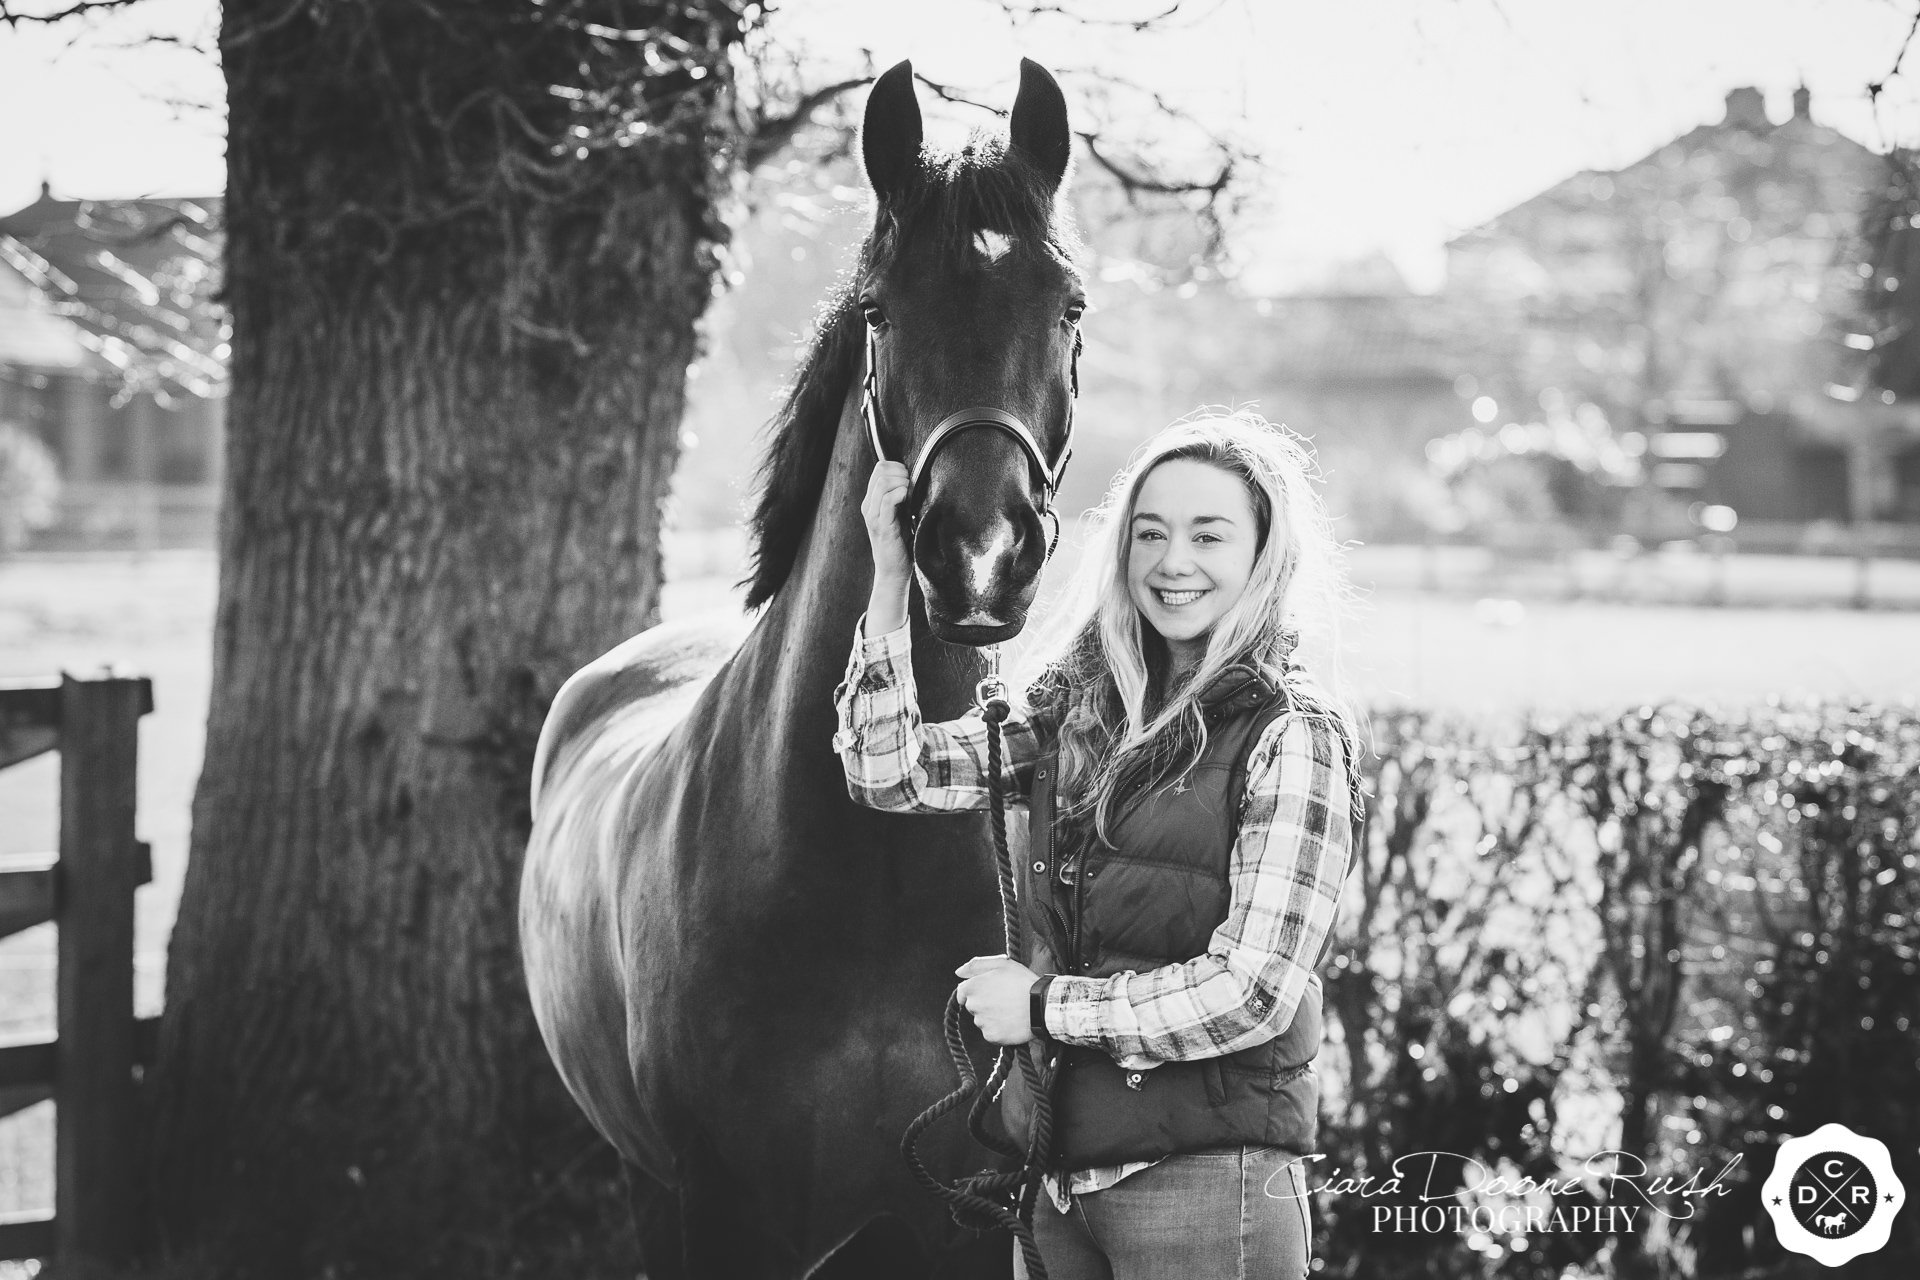 Chloe's Horse & Rider Photo Shoot with Rum & Ted